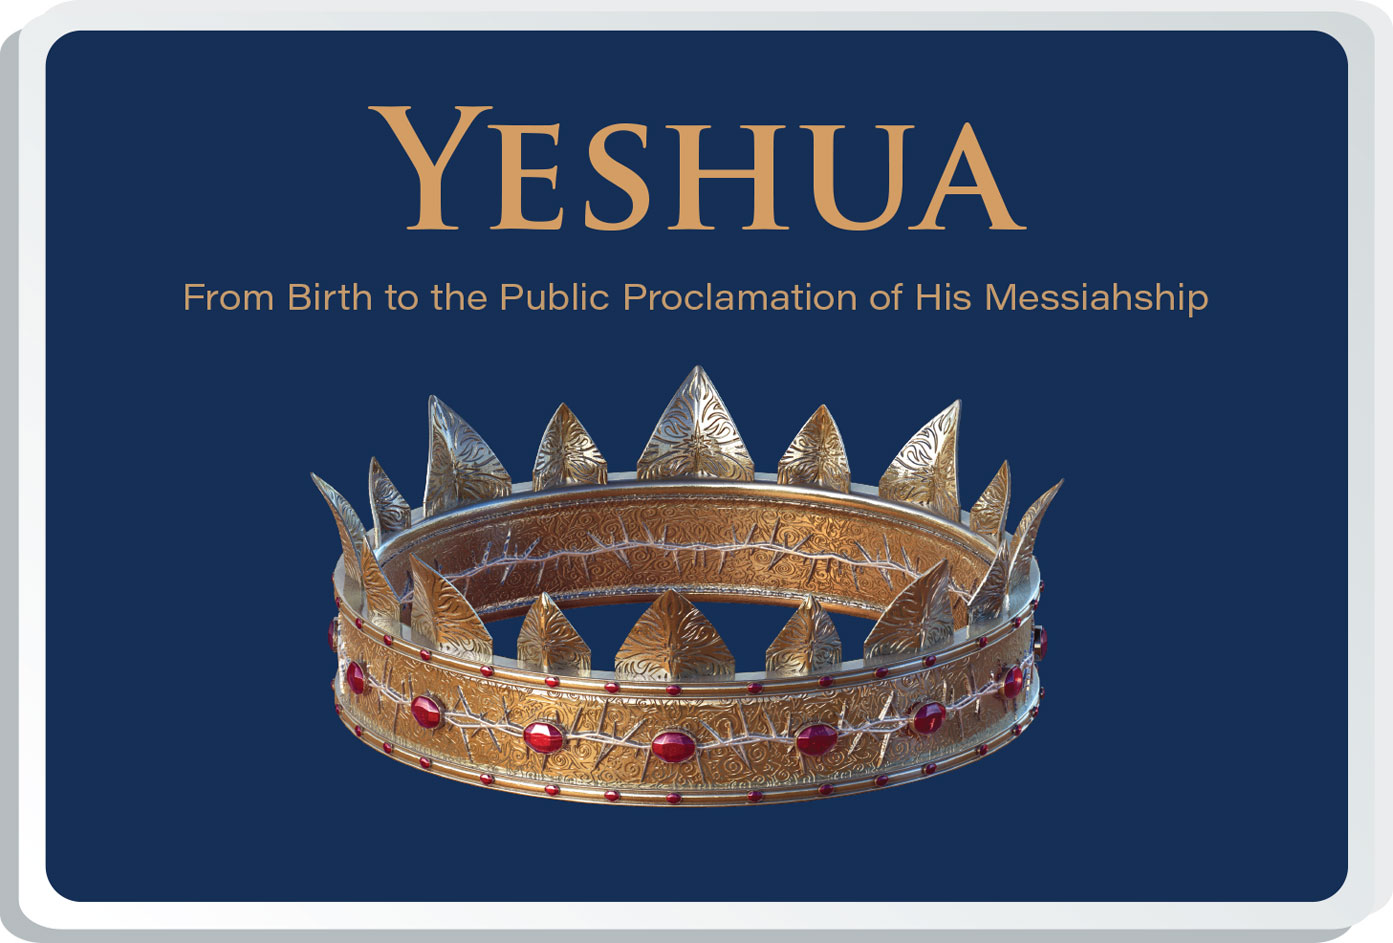 The Life of Yeshua from a Messianic Jewish Perspective